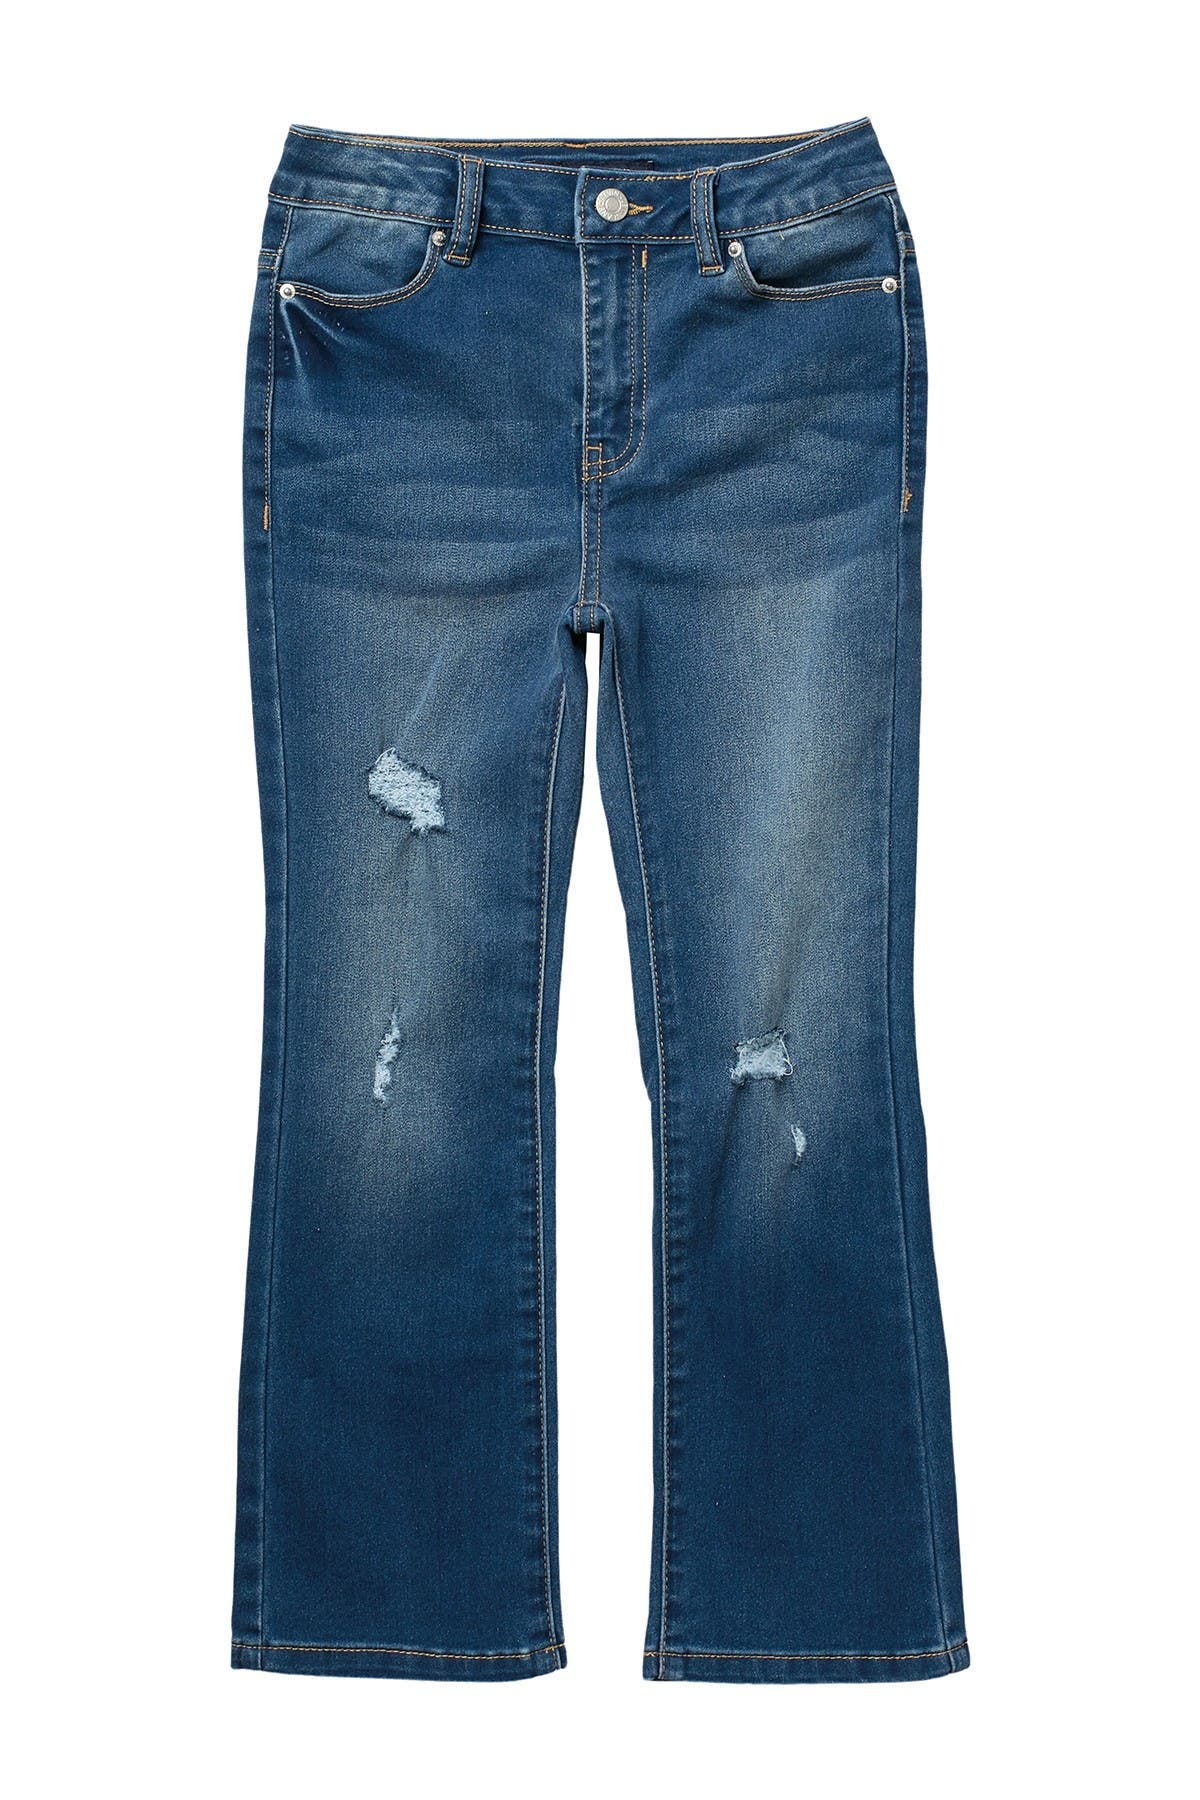 Image of Calvin Klein High Rise Flare Jeans